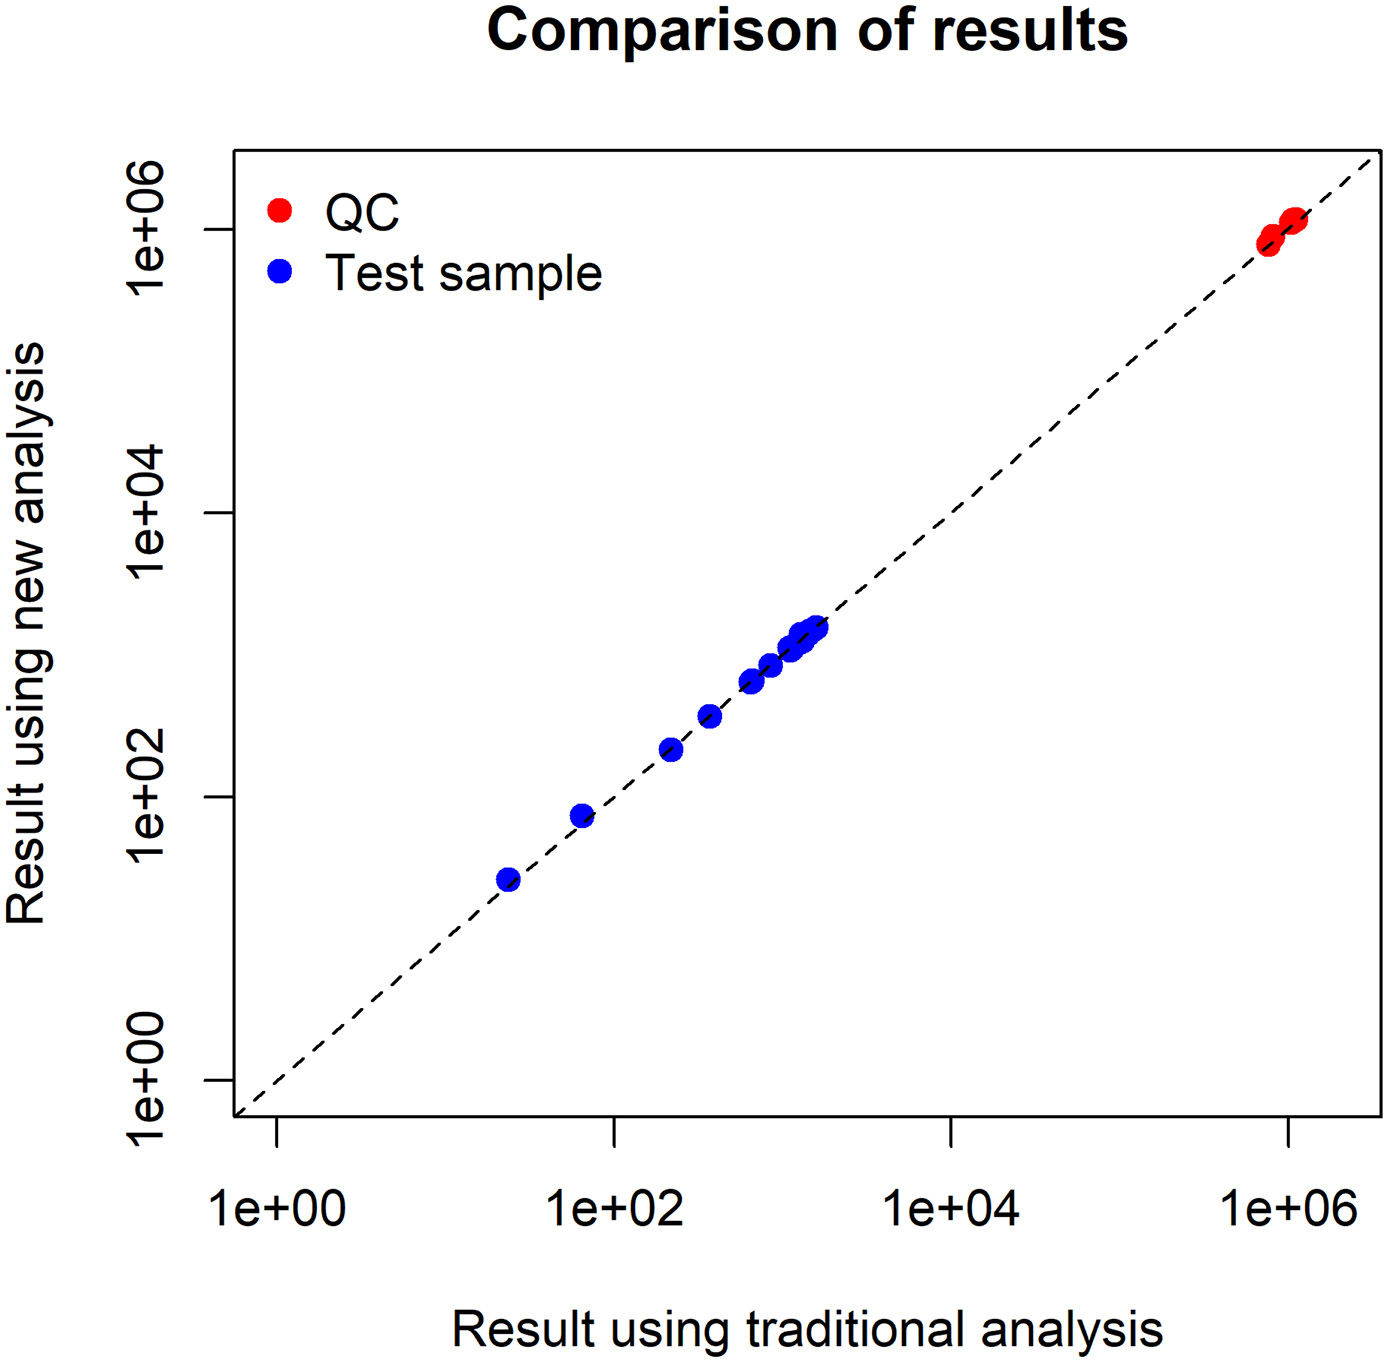 Result using traditional analysis